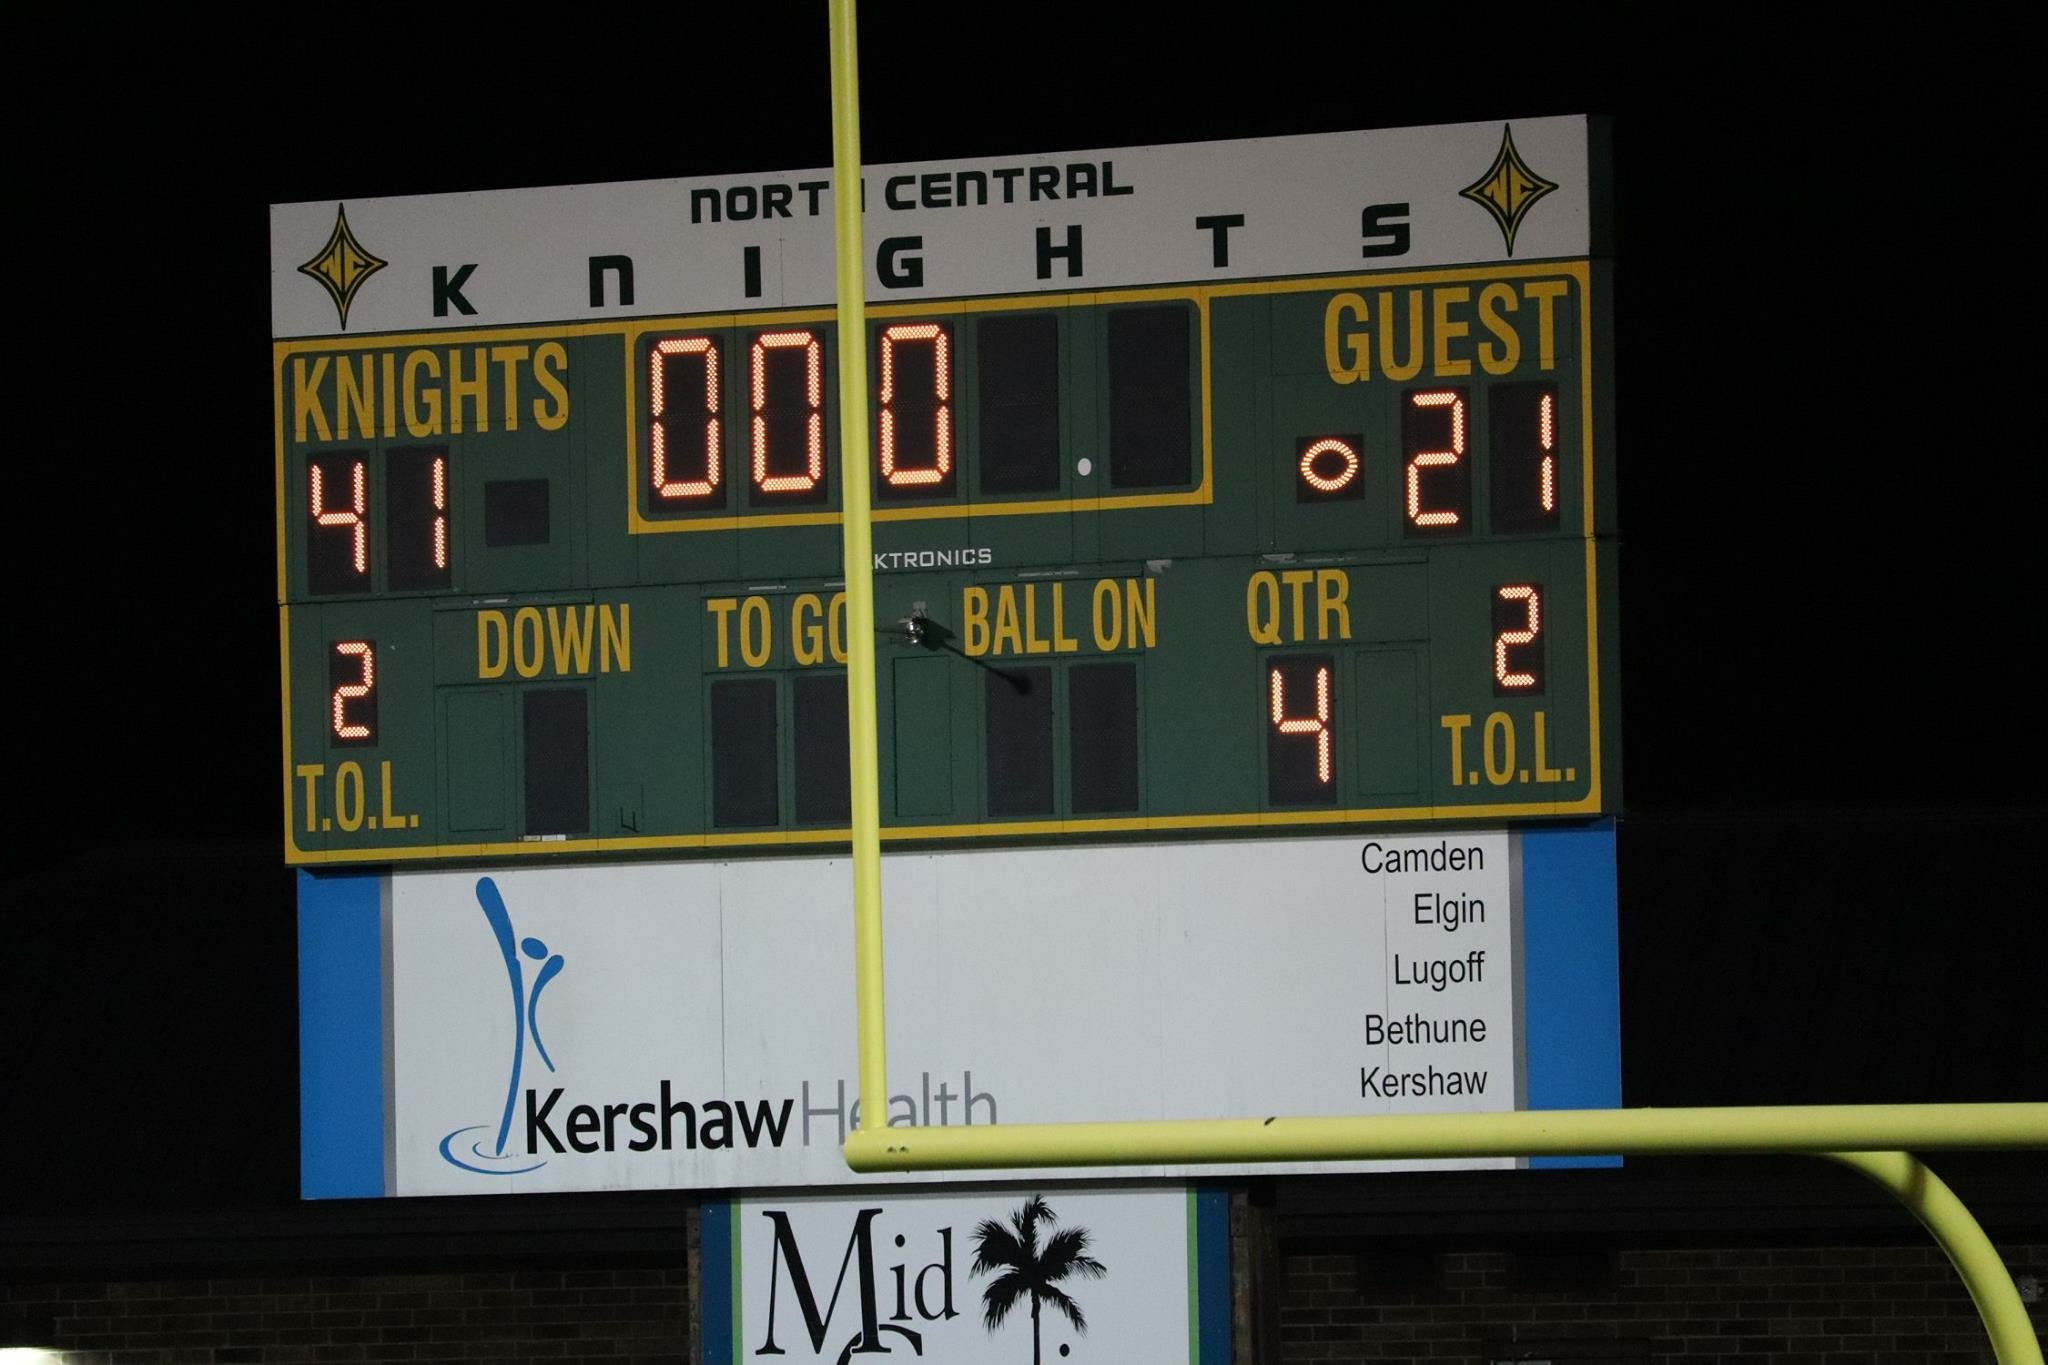 Knights defeat Central for 1st Time in 30 years!